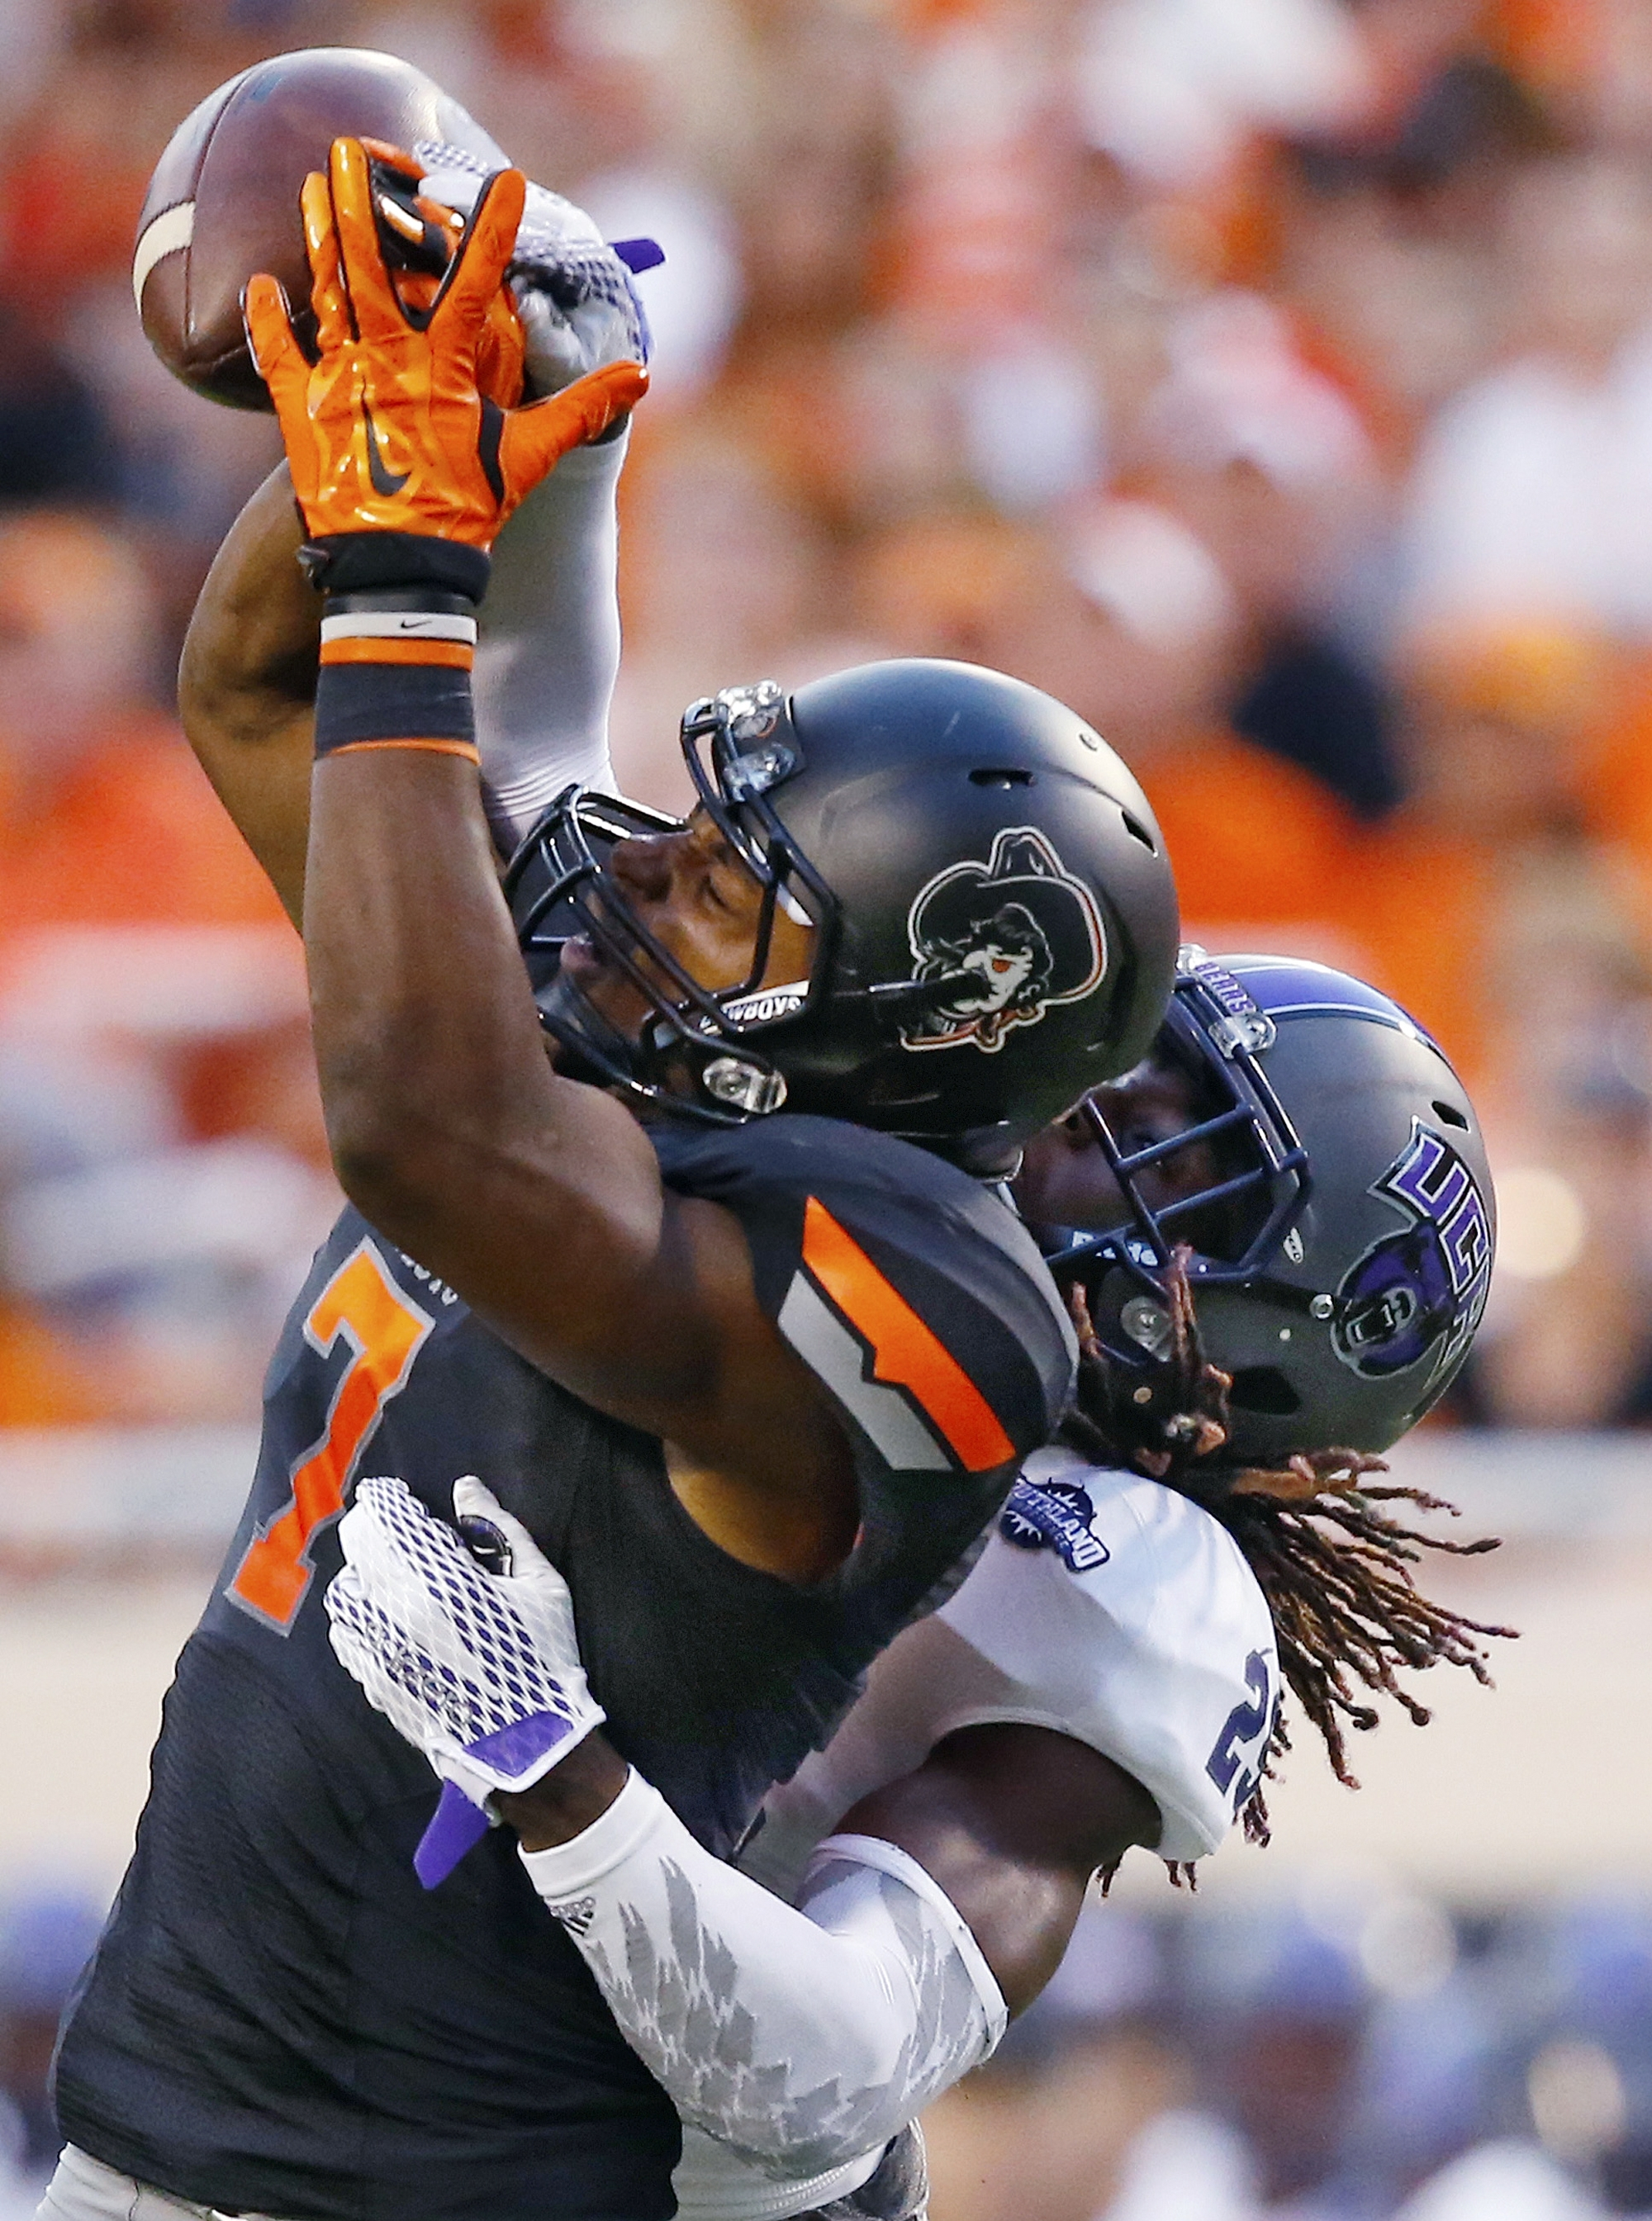 Central Arkansas cornerback Tremon Smith (29) breaks up a pass intended for Oklahoma State wide receiver Brandon Sheperd (7) in the second quarter of an NCAA college football game in Stillwater, Okla., Saturday, Sept. 12, 2015. (AP Photo/Sue Ogrocki)